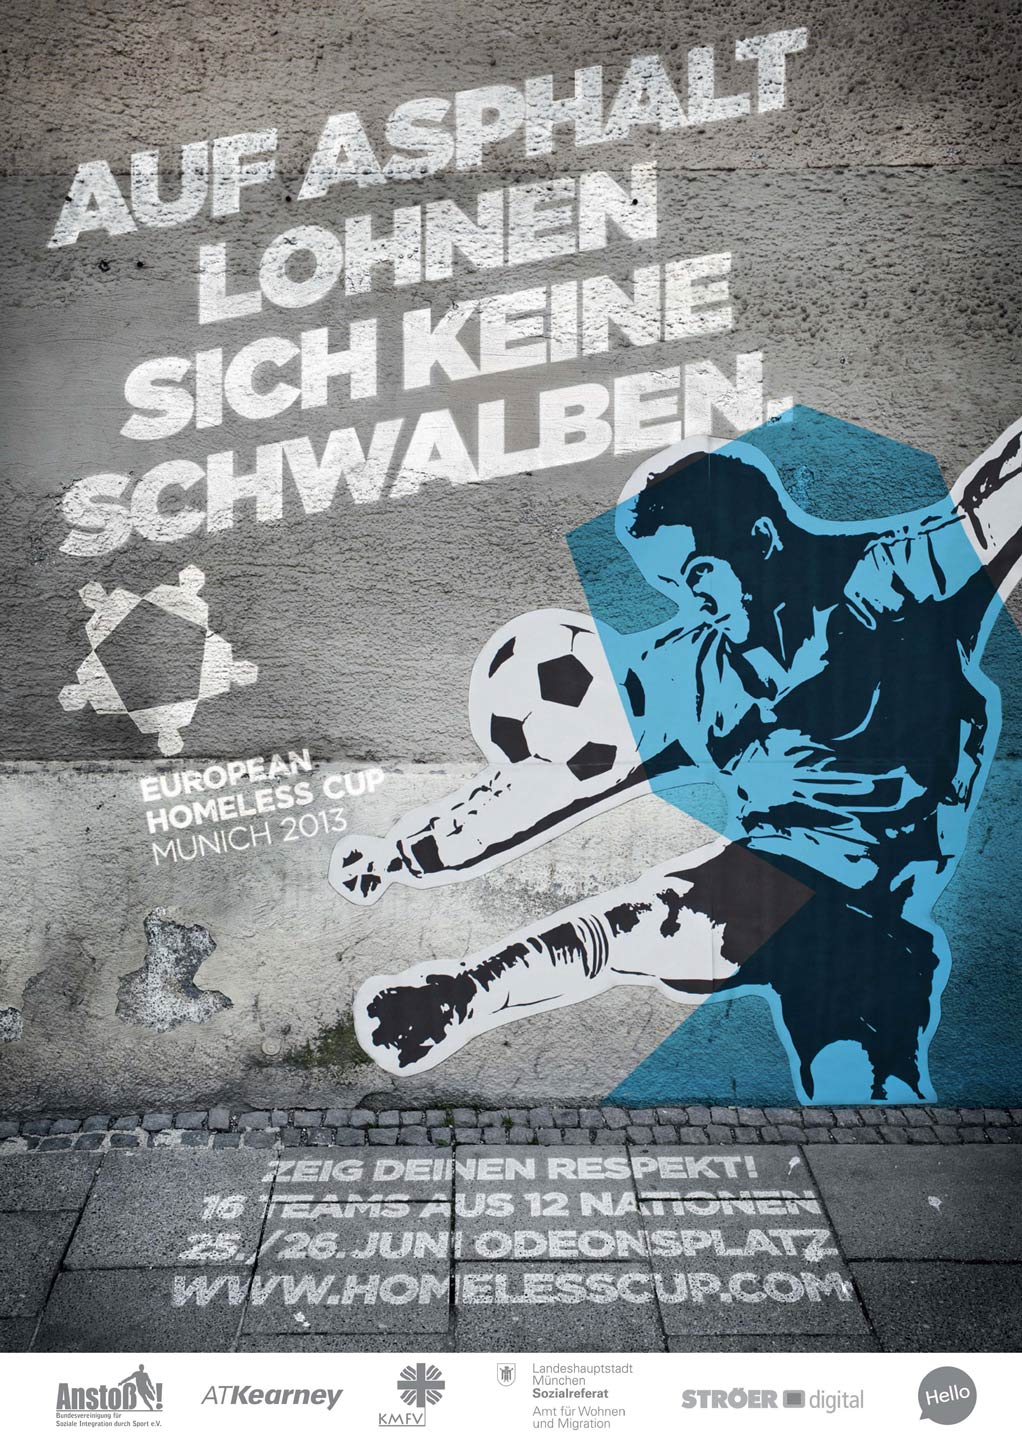 Maximilian_Stengl_Homelesscup_Poster_1440_01